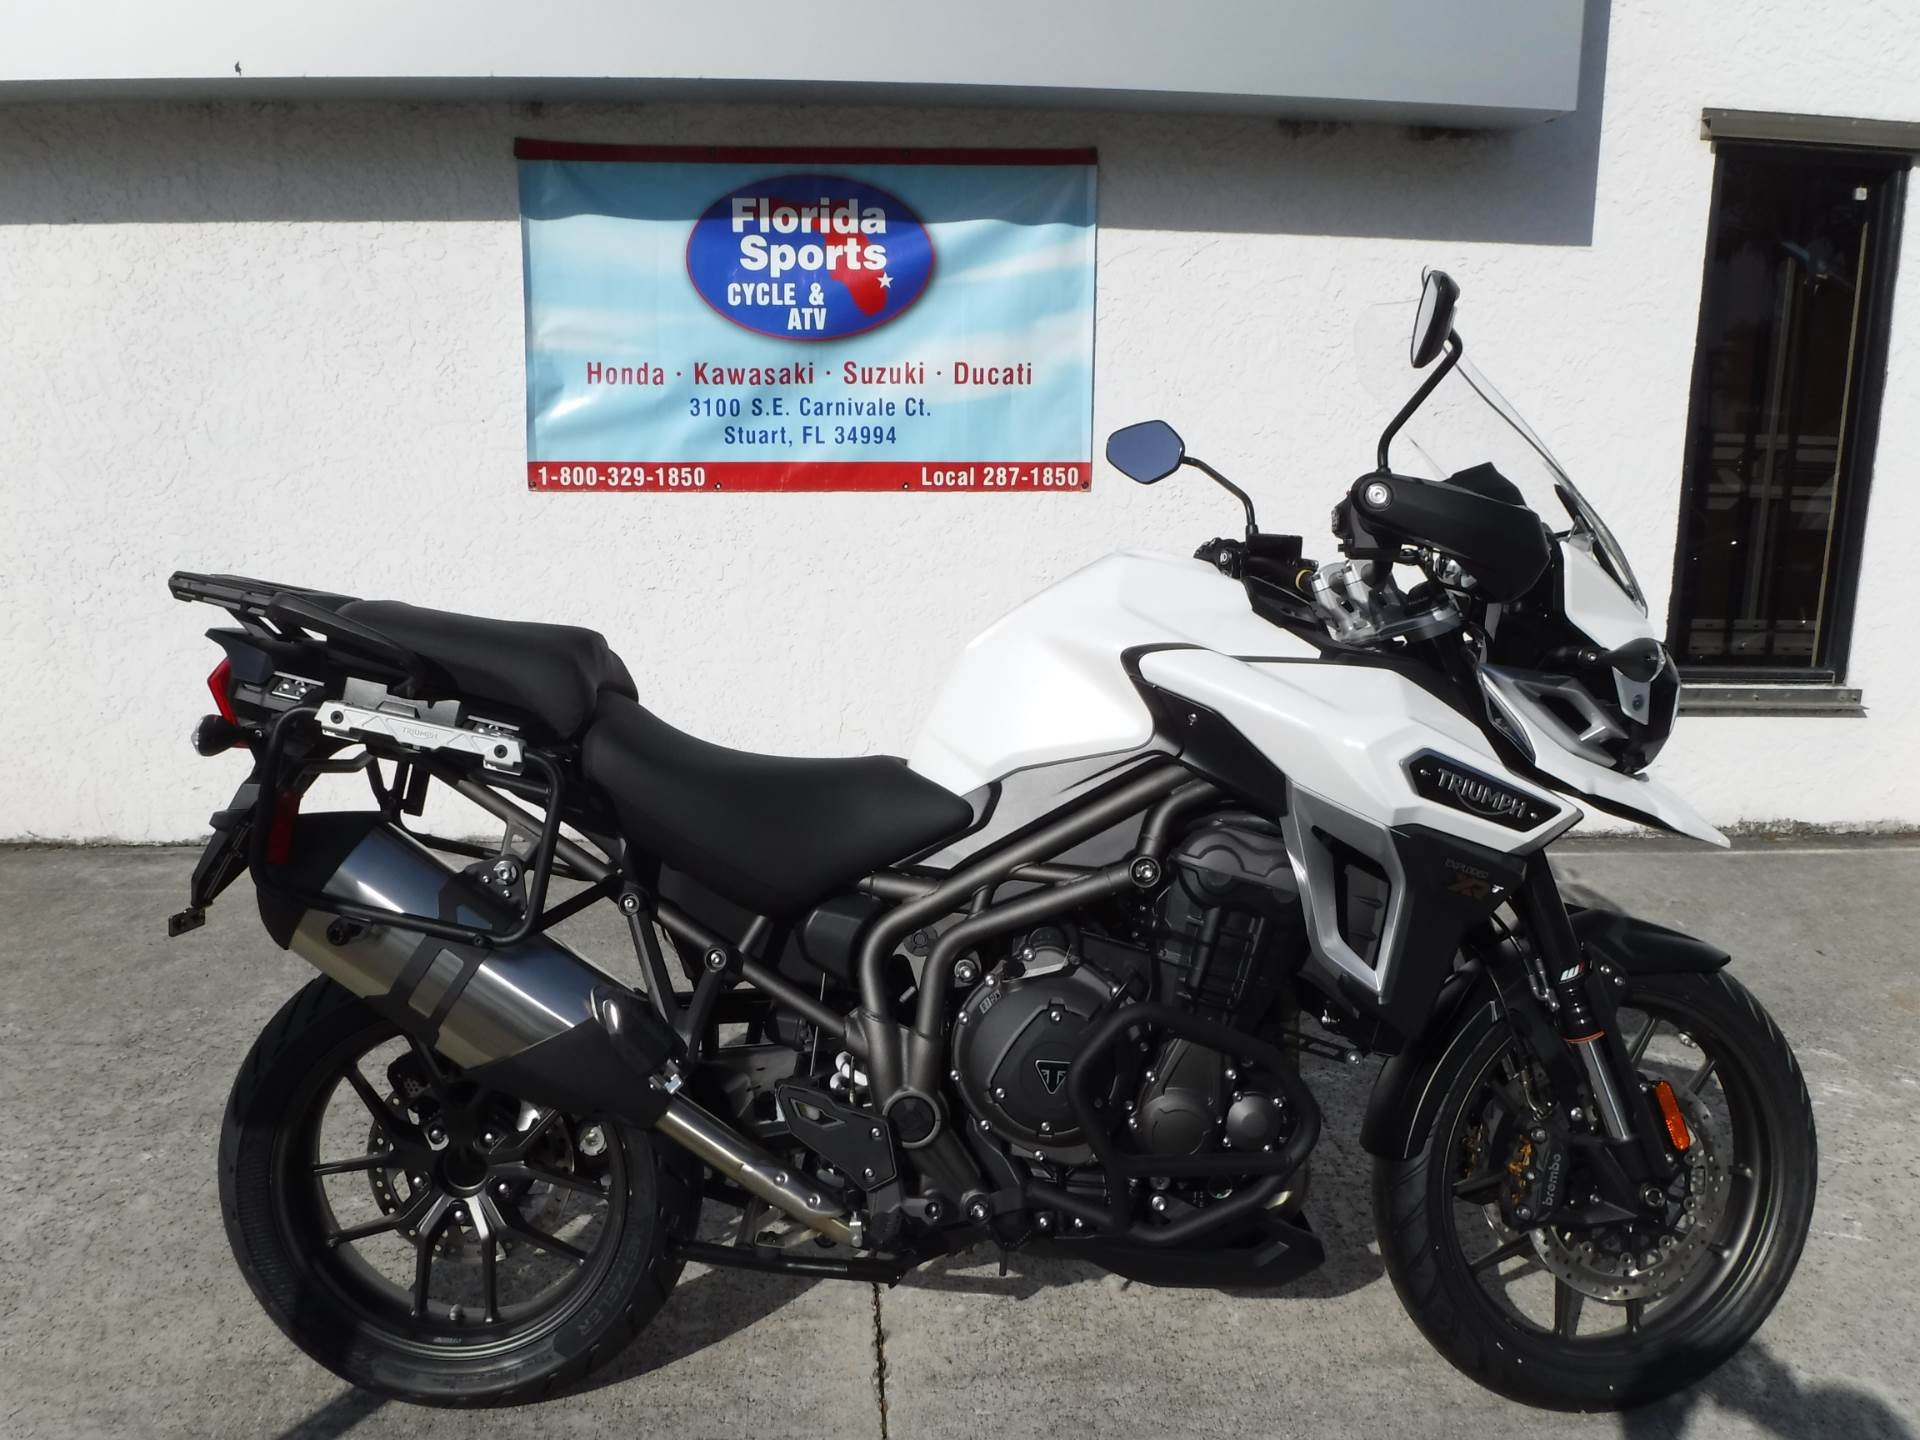 2017 Triumph Tiger Explorer XRT in Stuart, Florida - Photo 1